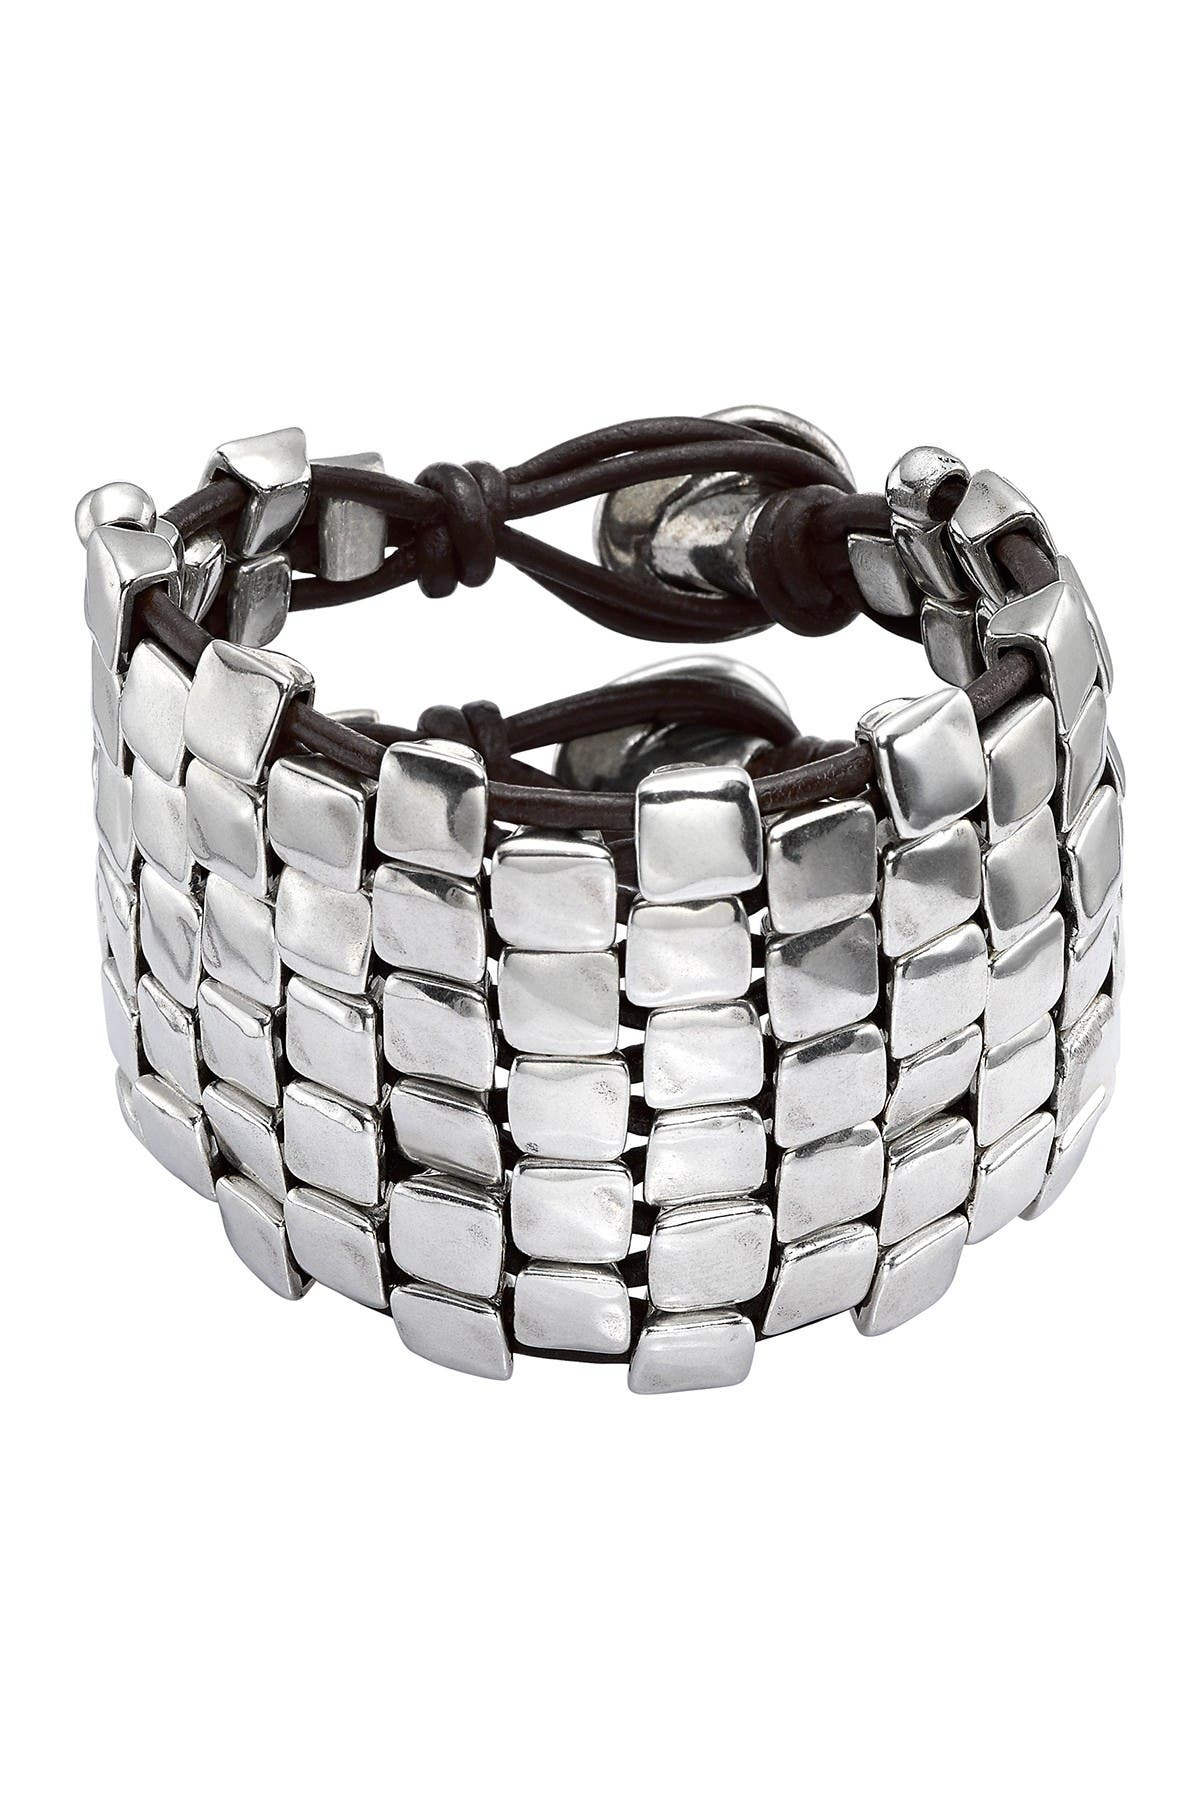 Image of Uno De 50 Wall Up Bracelet